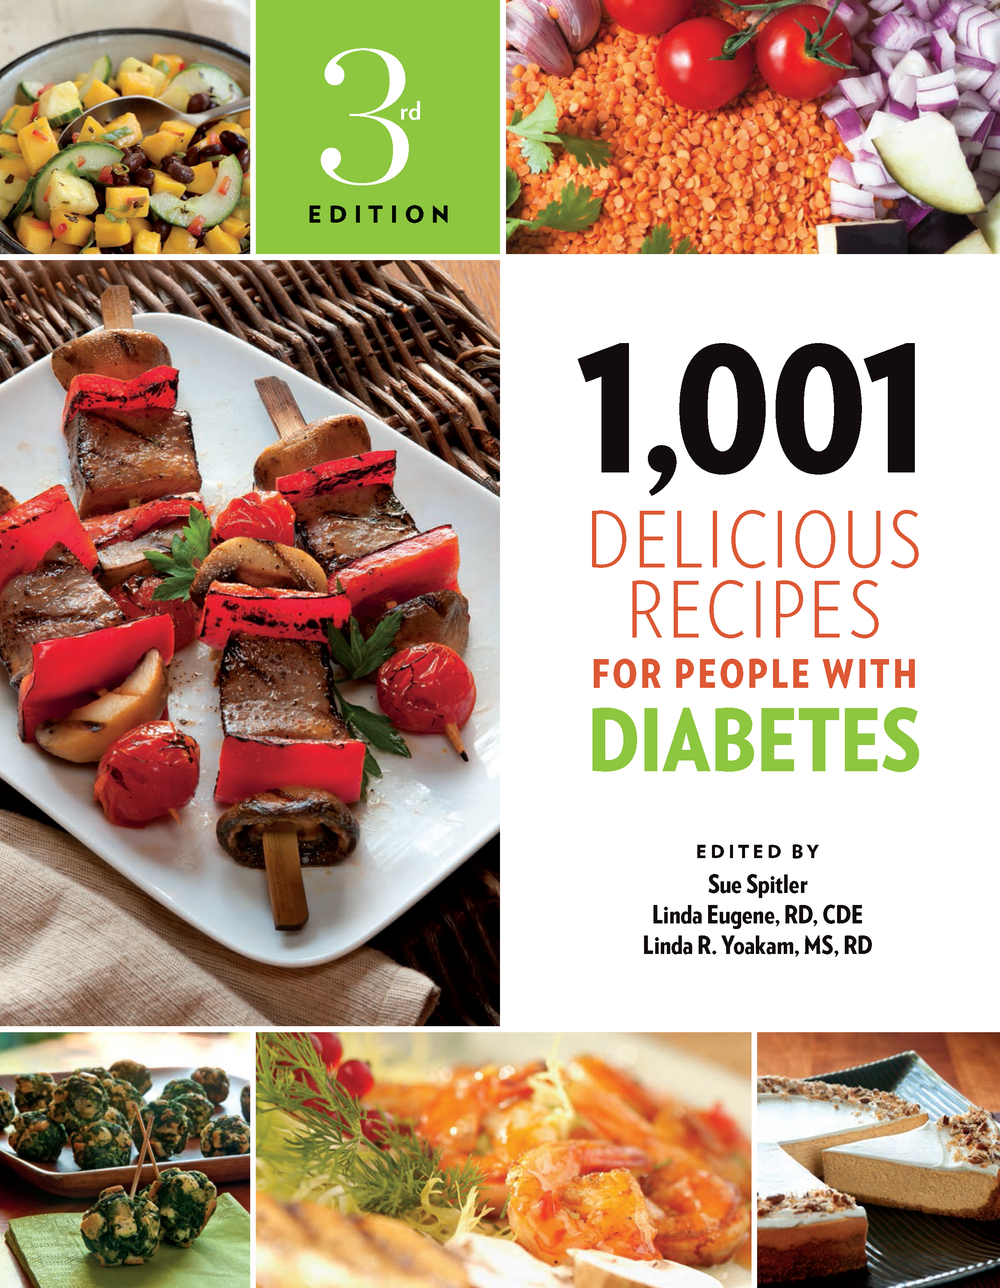 1,001 Delicious Recipes Diabetes_Page_01.png